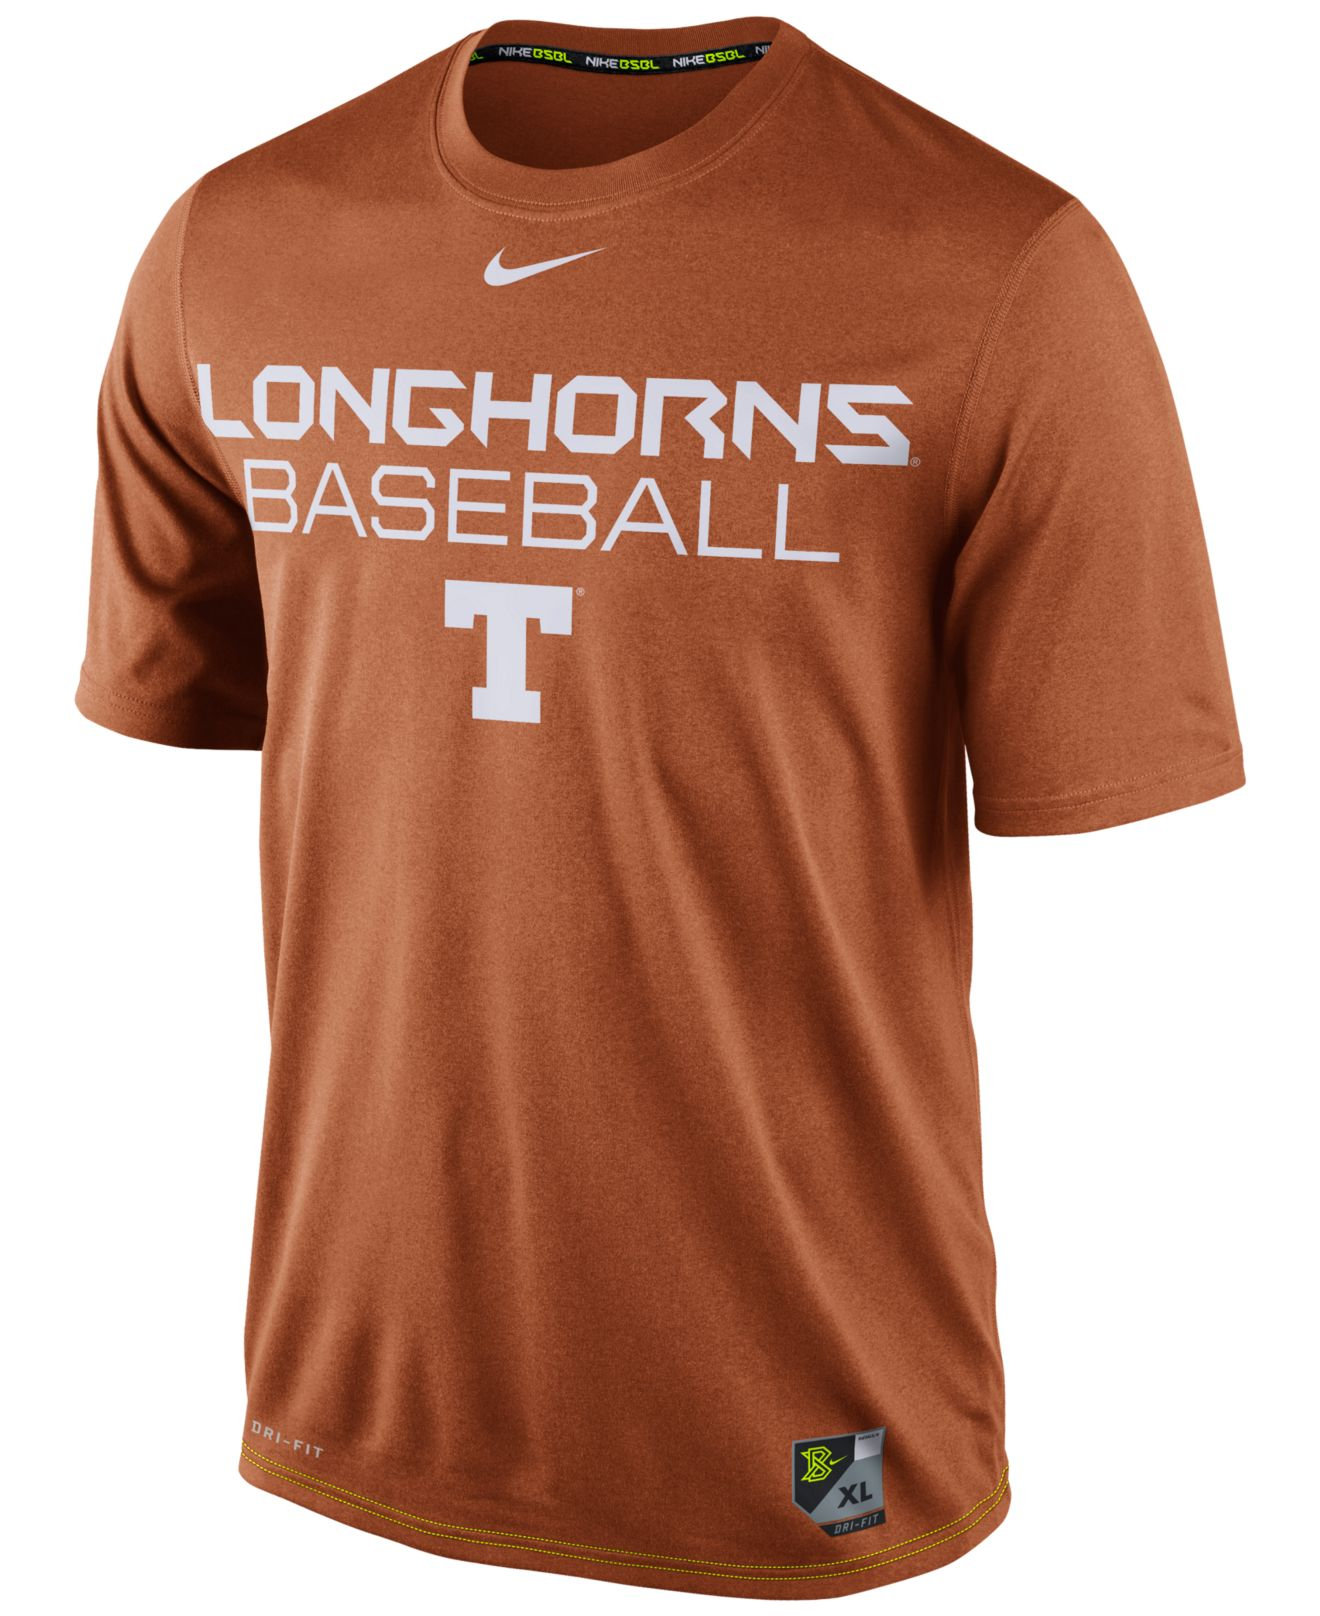 Ncaa t shirts texas longhorns orange for Texas baseball t shirt